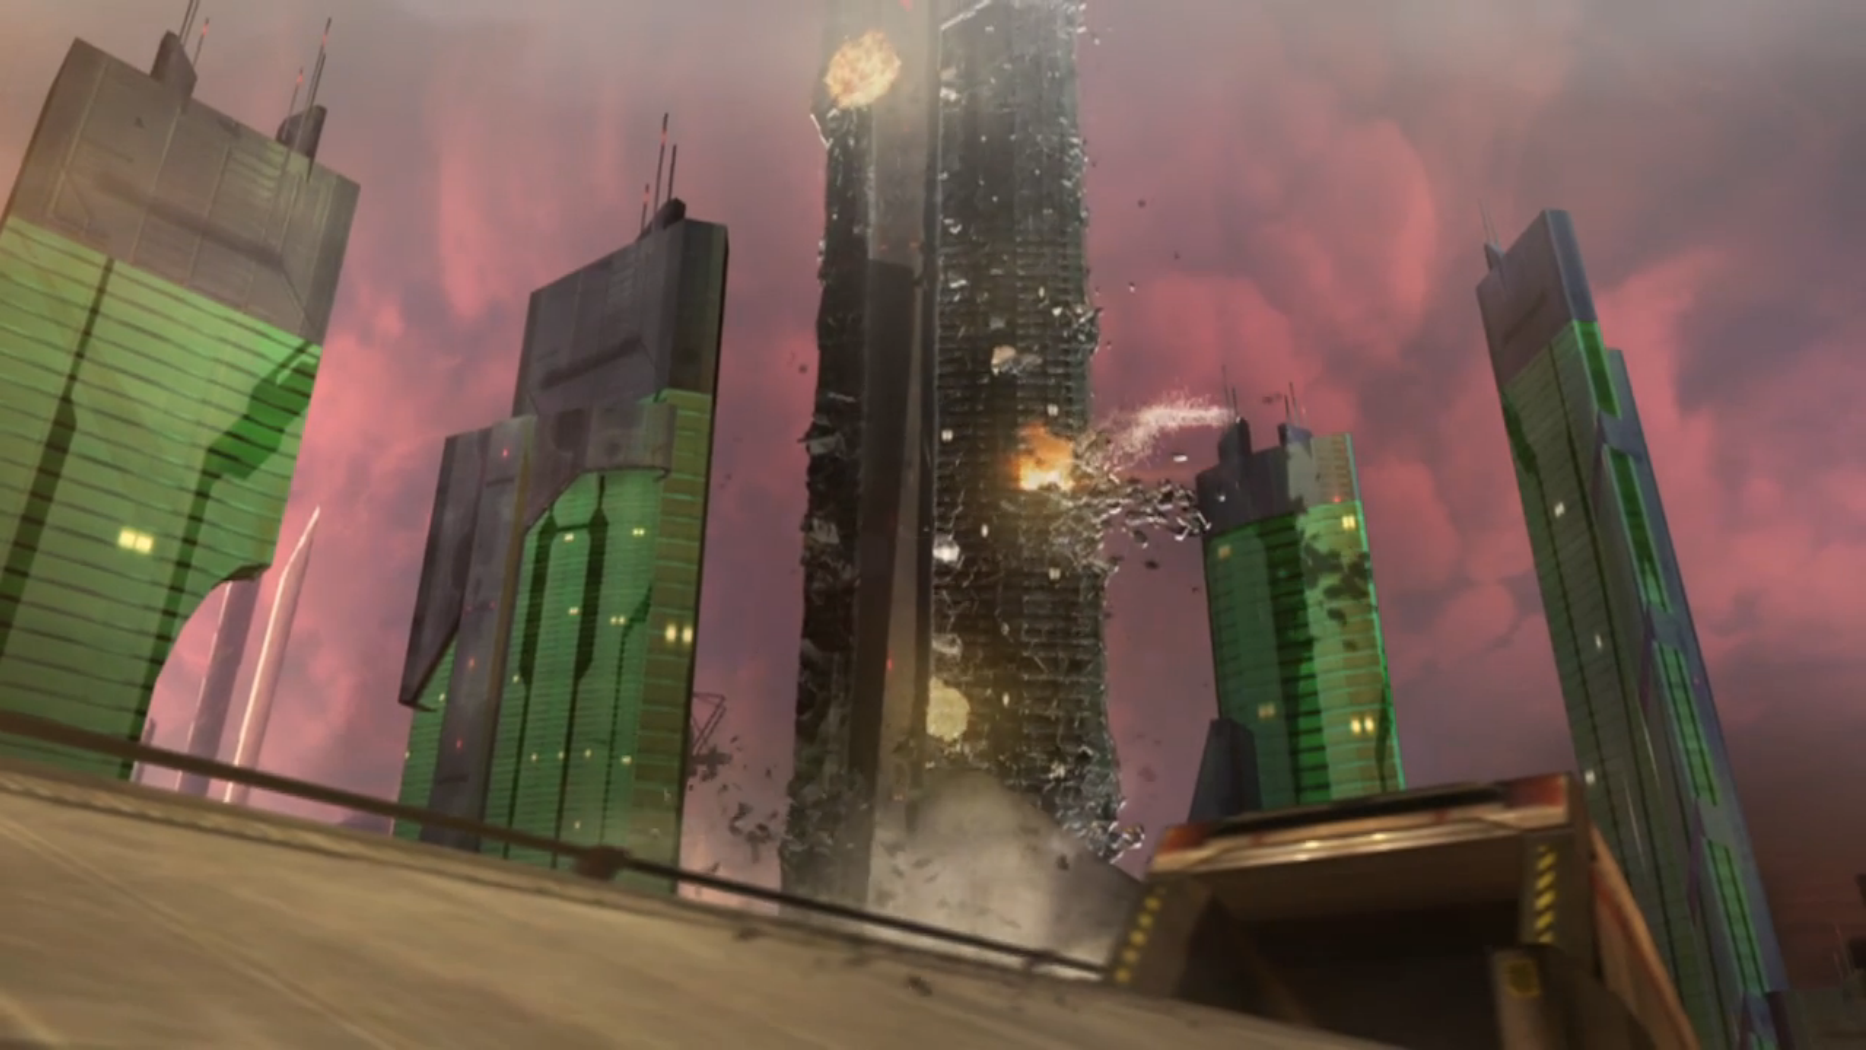 emeraldtowercollapse.png